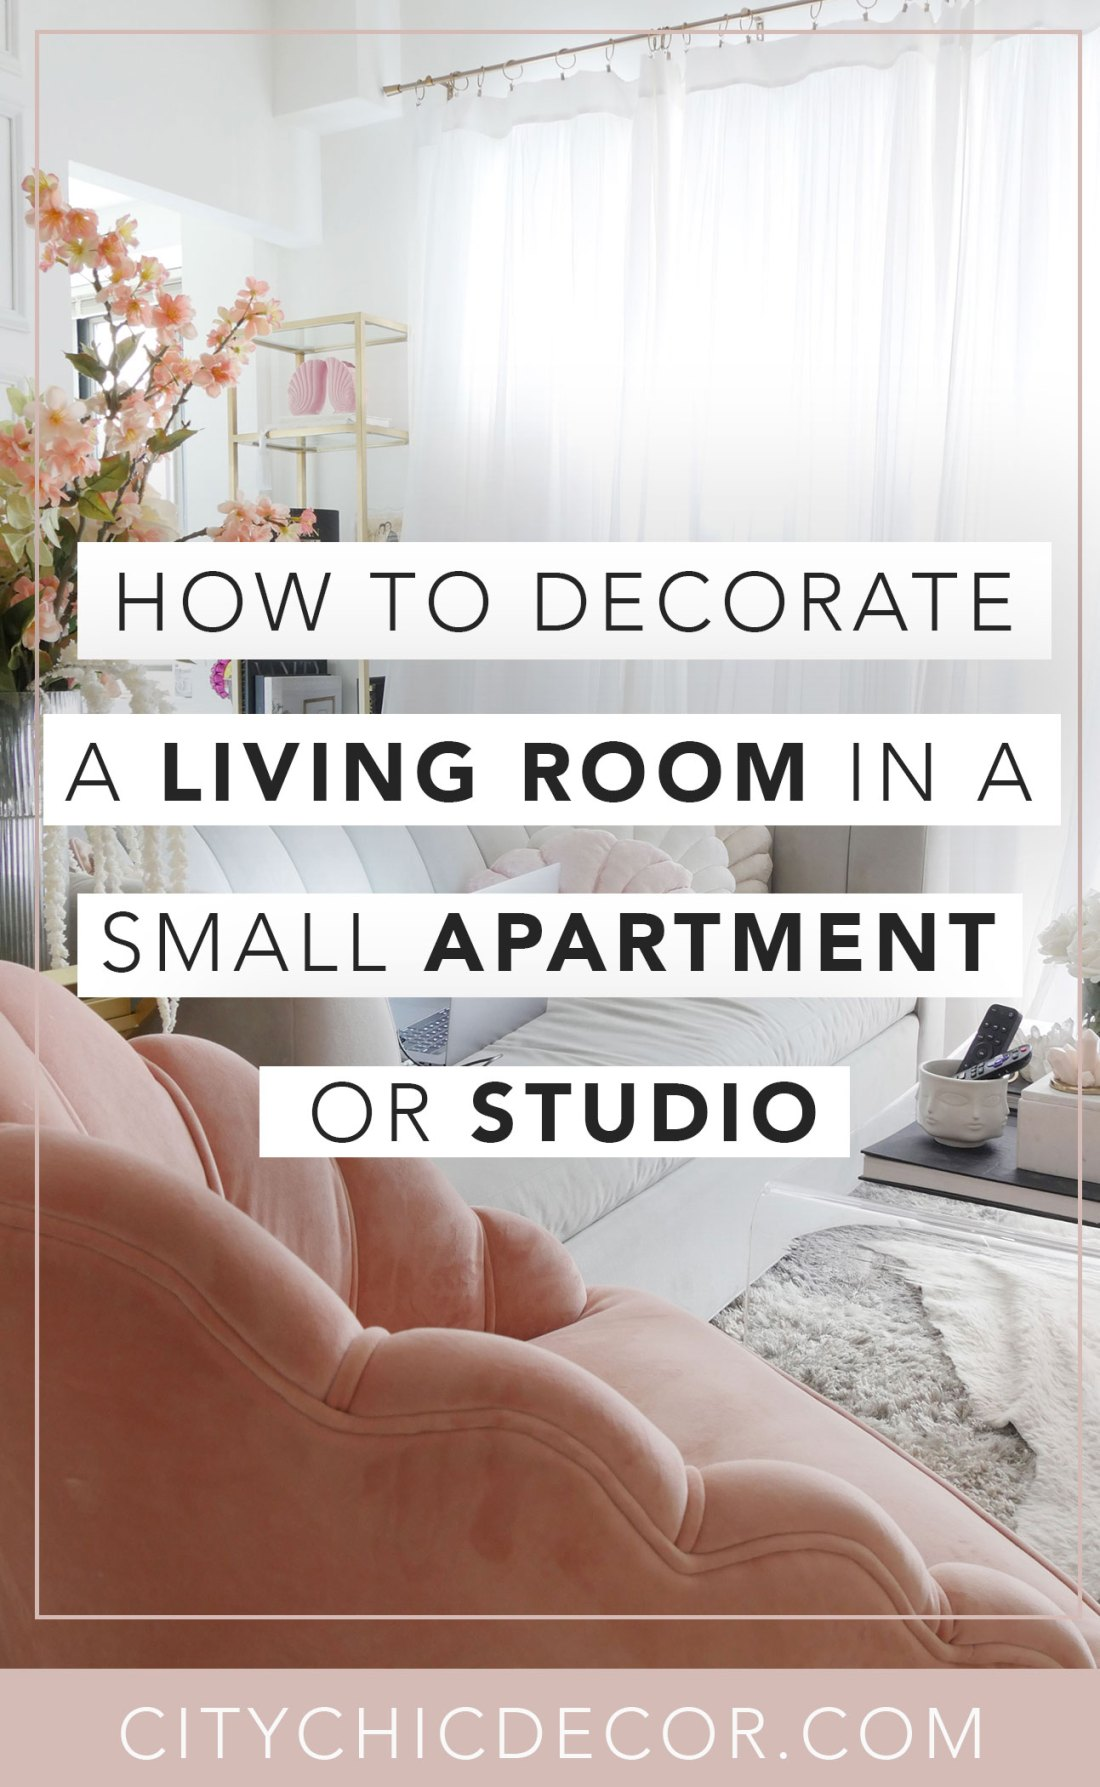 Decorating a living room in a small apartment or studio apartment can be challenging, but not impossible! You can achieve your dream living room in a tiny apartment with these four tips that include living room ideas and living room decor ideas to make a living room feel so much cuter and larger! It also includes how to decorate a TV wall and the trick to designing a living room in a small space.